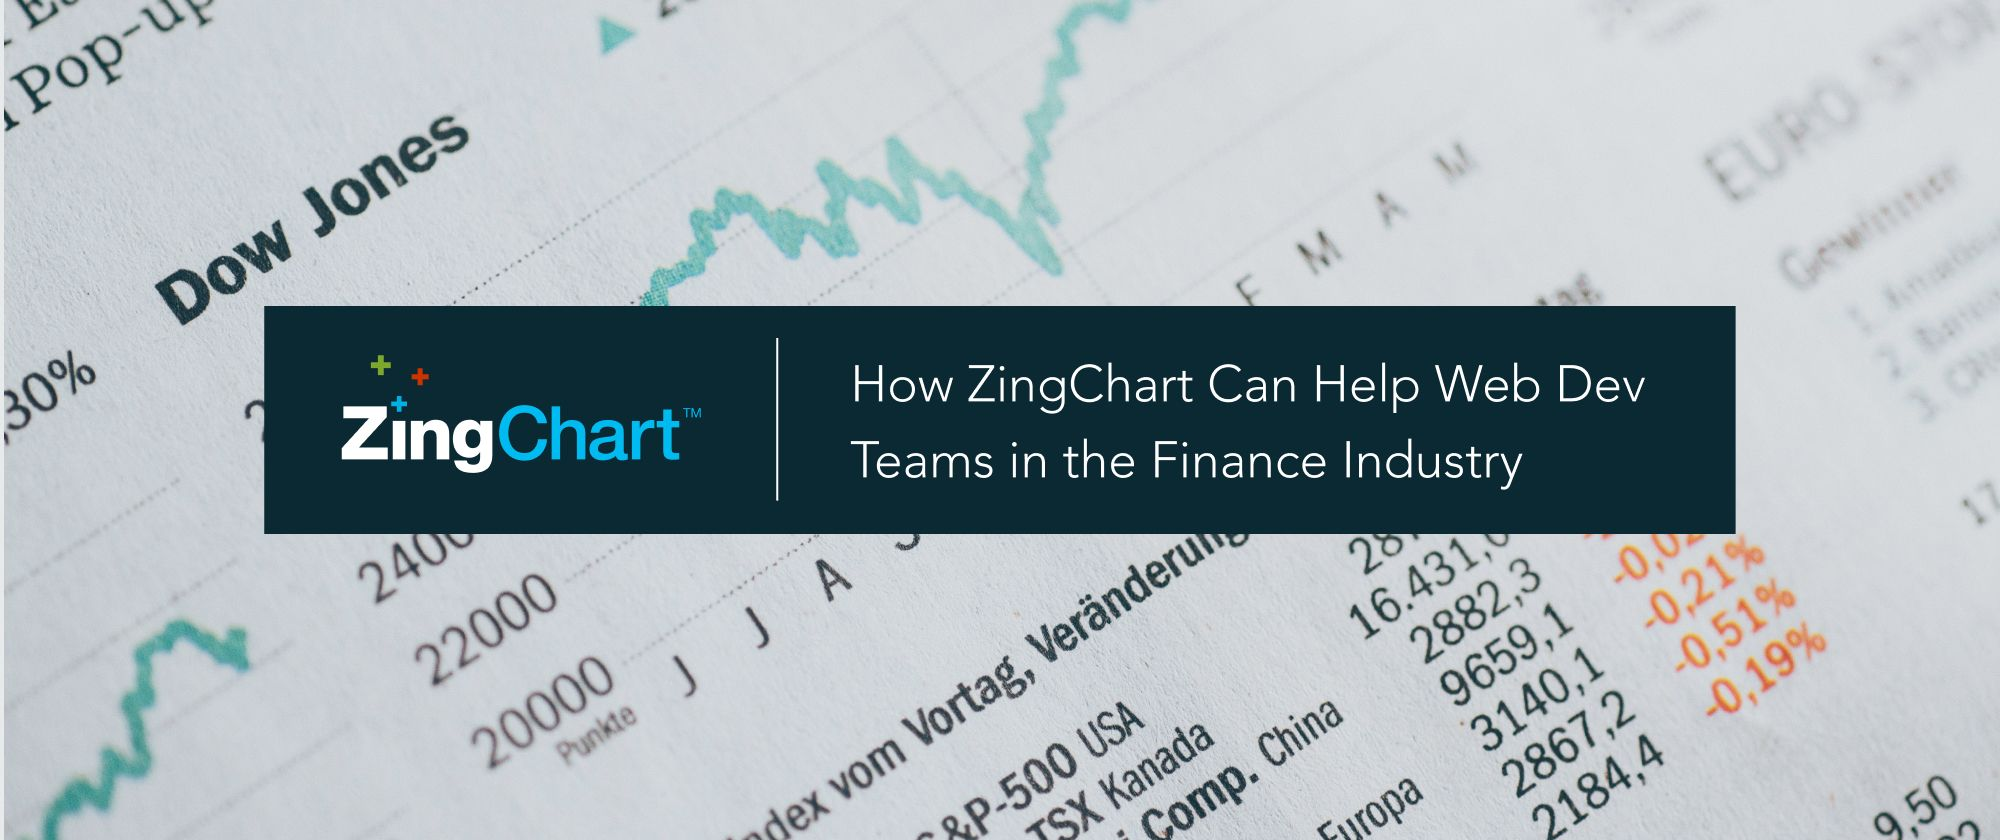 """Cover image for """"How ZingChart can help web dev teams in the finance industry"""" blog post"""